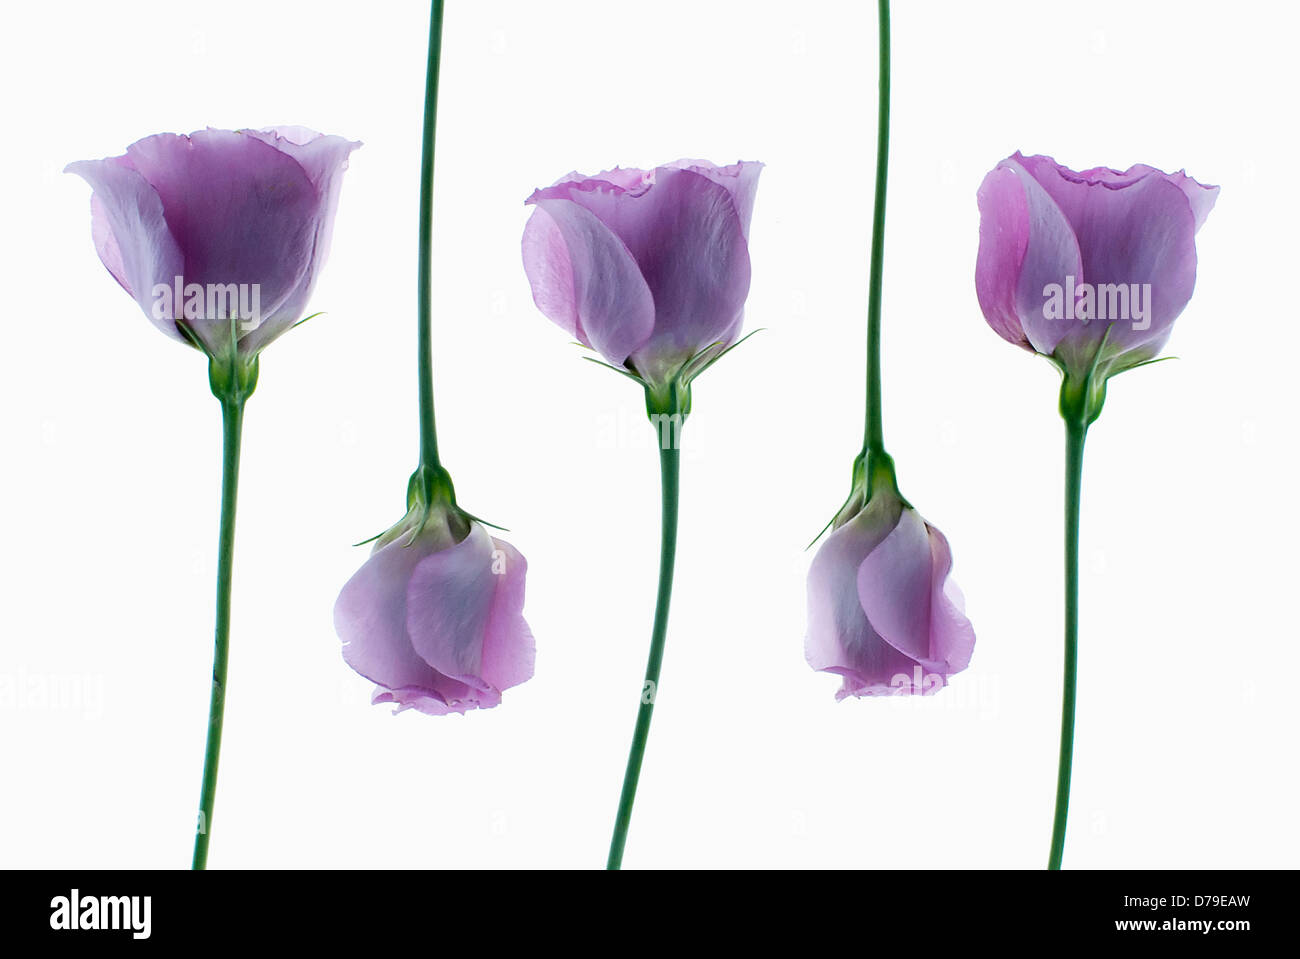 Five individual flowers of Eustoma cultivar arranged in alternating sequence. - Stock Image